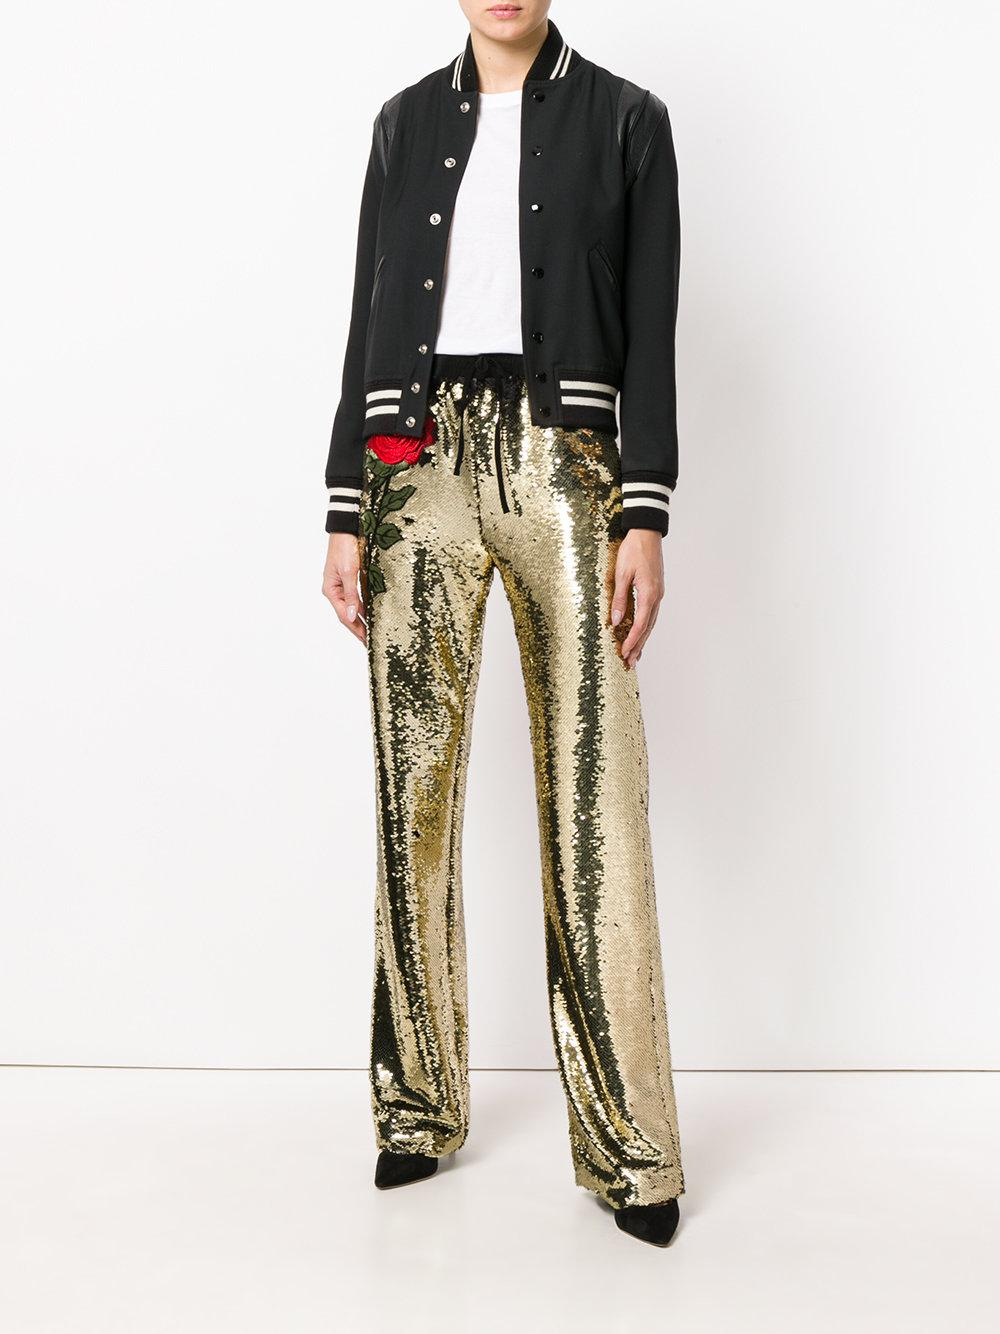 Scotty Orita palazzo pants - Metallic Philipp Plein Buy For Sale 100% Guaranteed Sale Online Affordable Cheap Price Outlet Popular AIukGb7x9